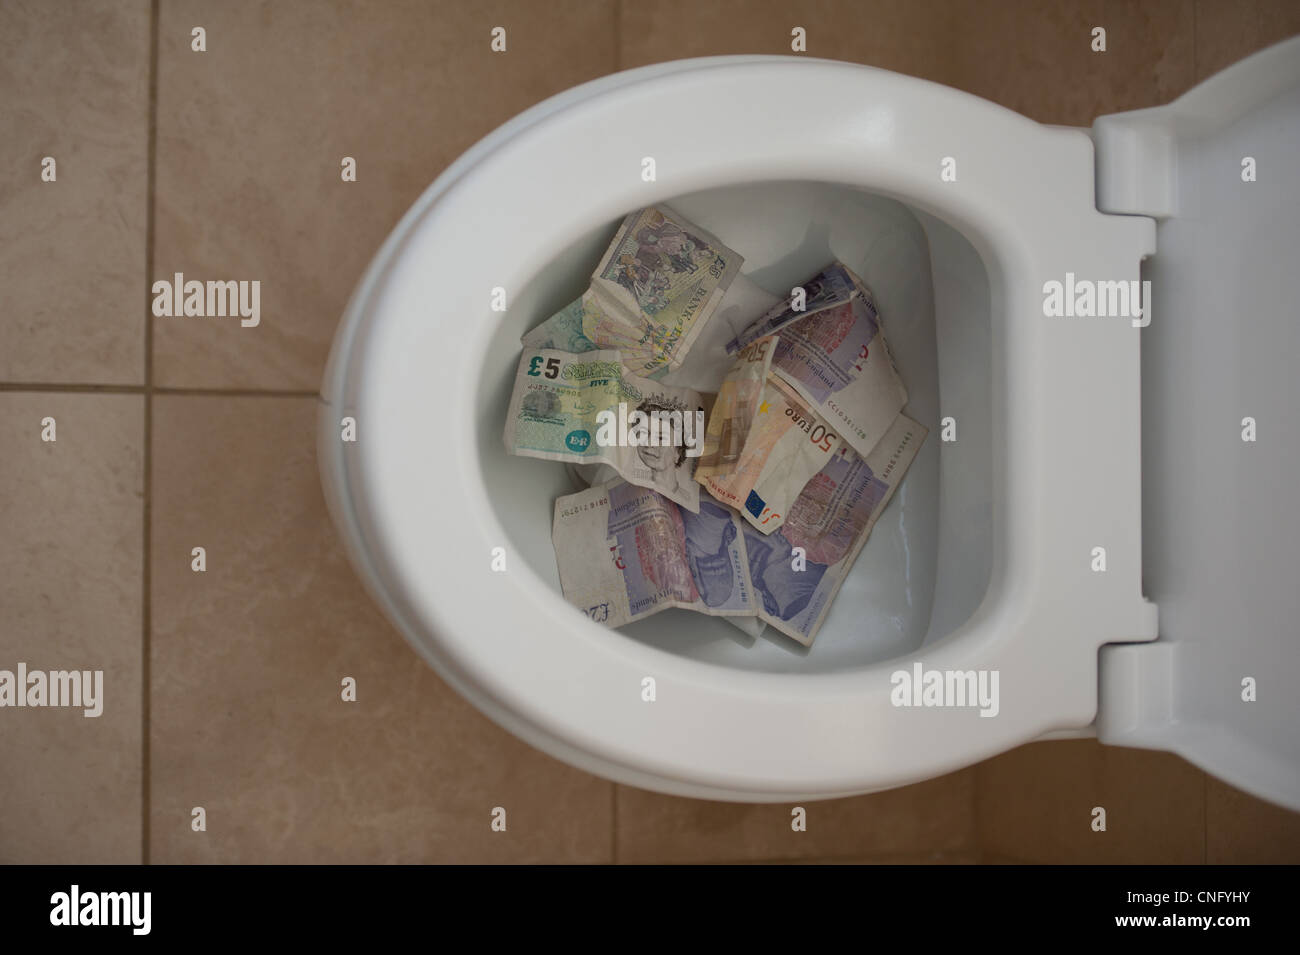 Financial crisis showing cash going down a toilet - Stock Image